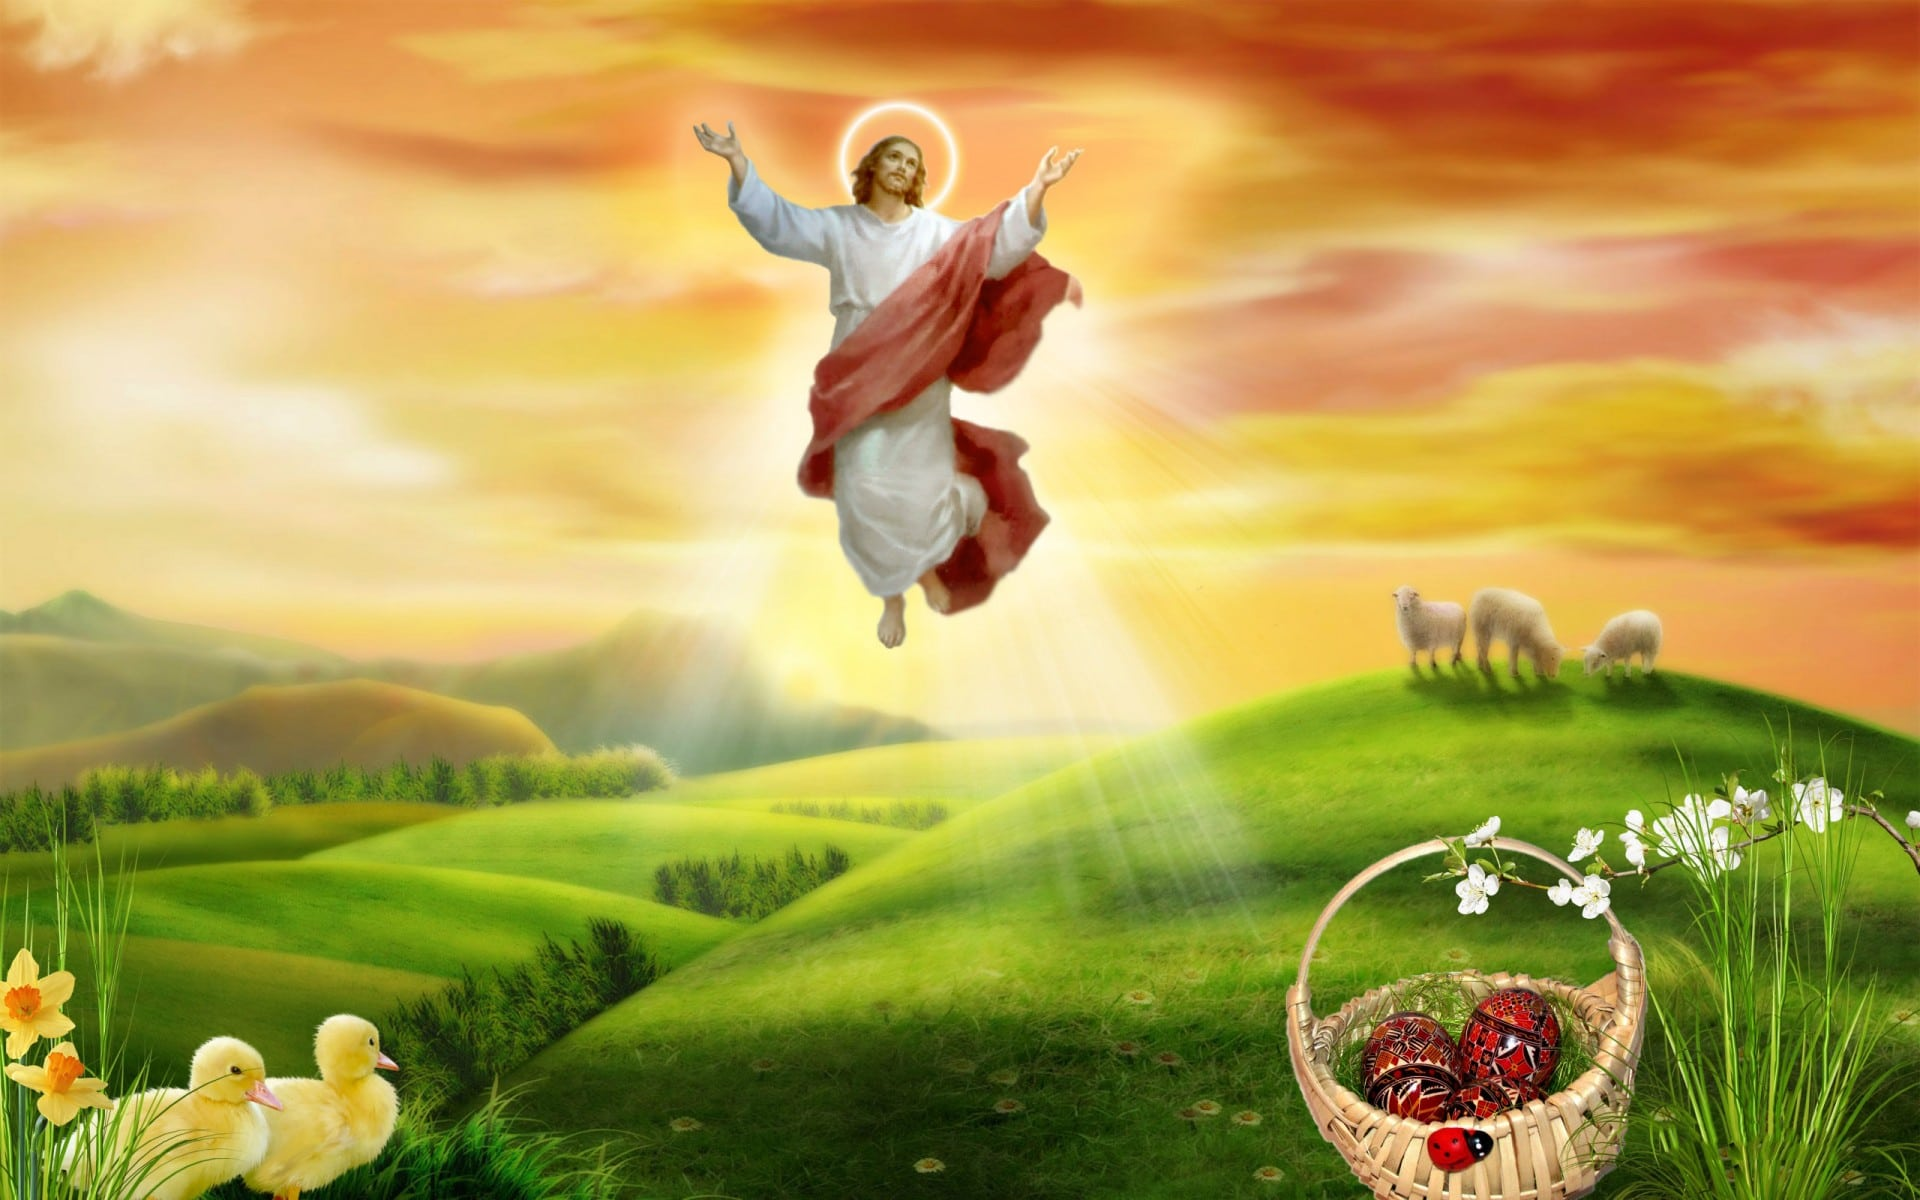 easter jesus prayer images - free hd images